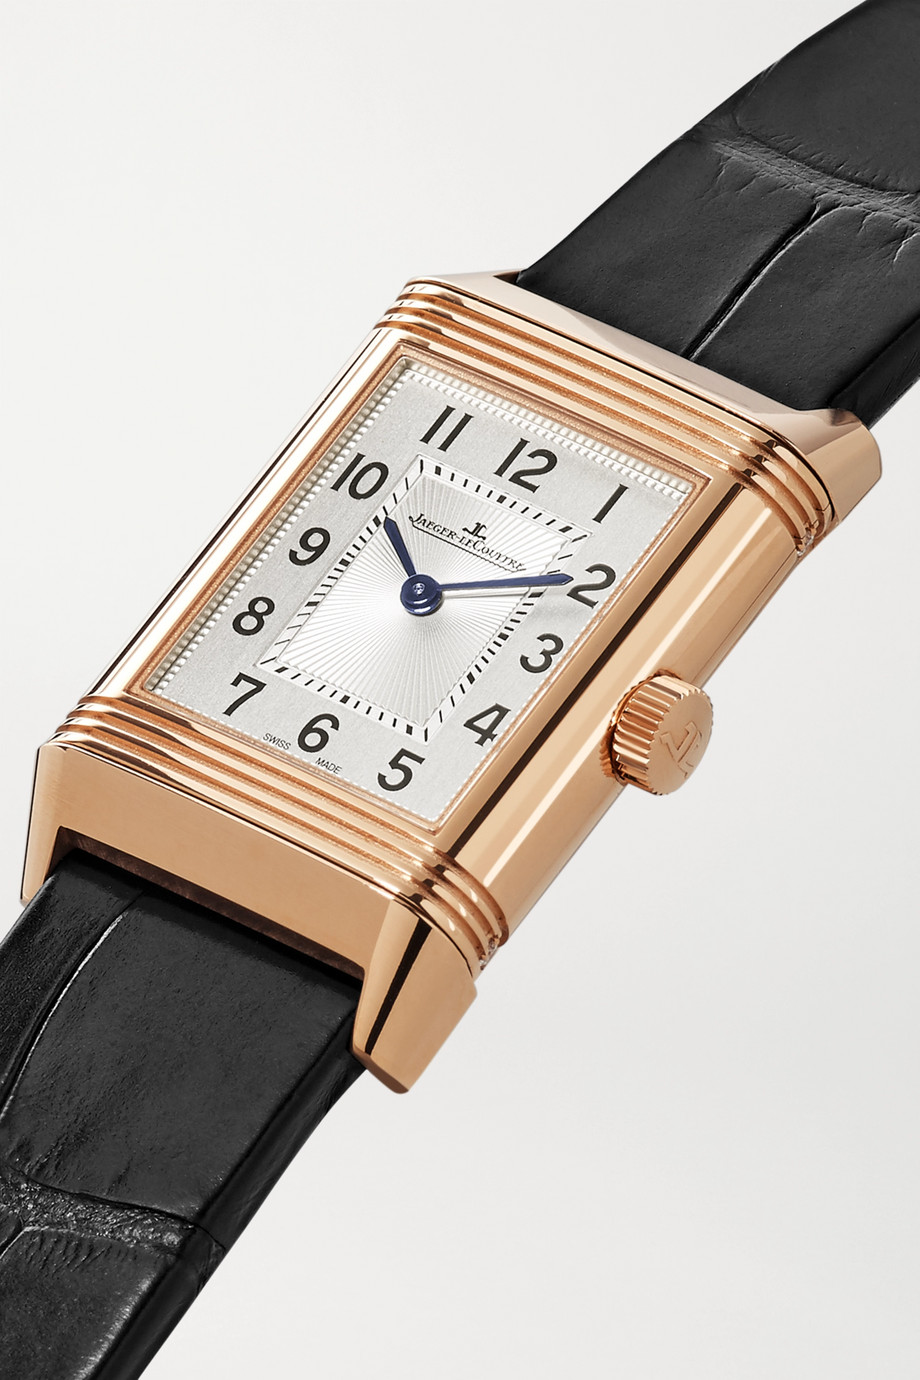 Jaeger-LeCoultre Reverso Classic Duetto hand-wound 21mm small rose gold, alligator and diamond watch